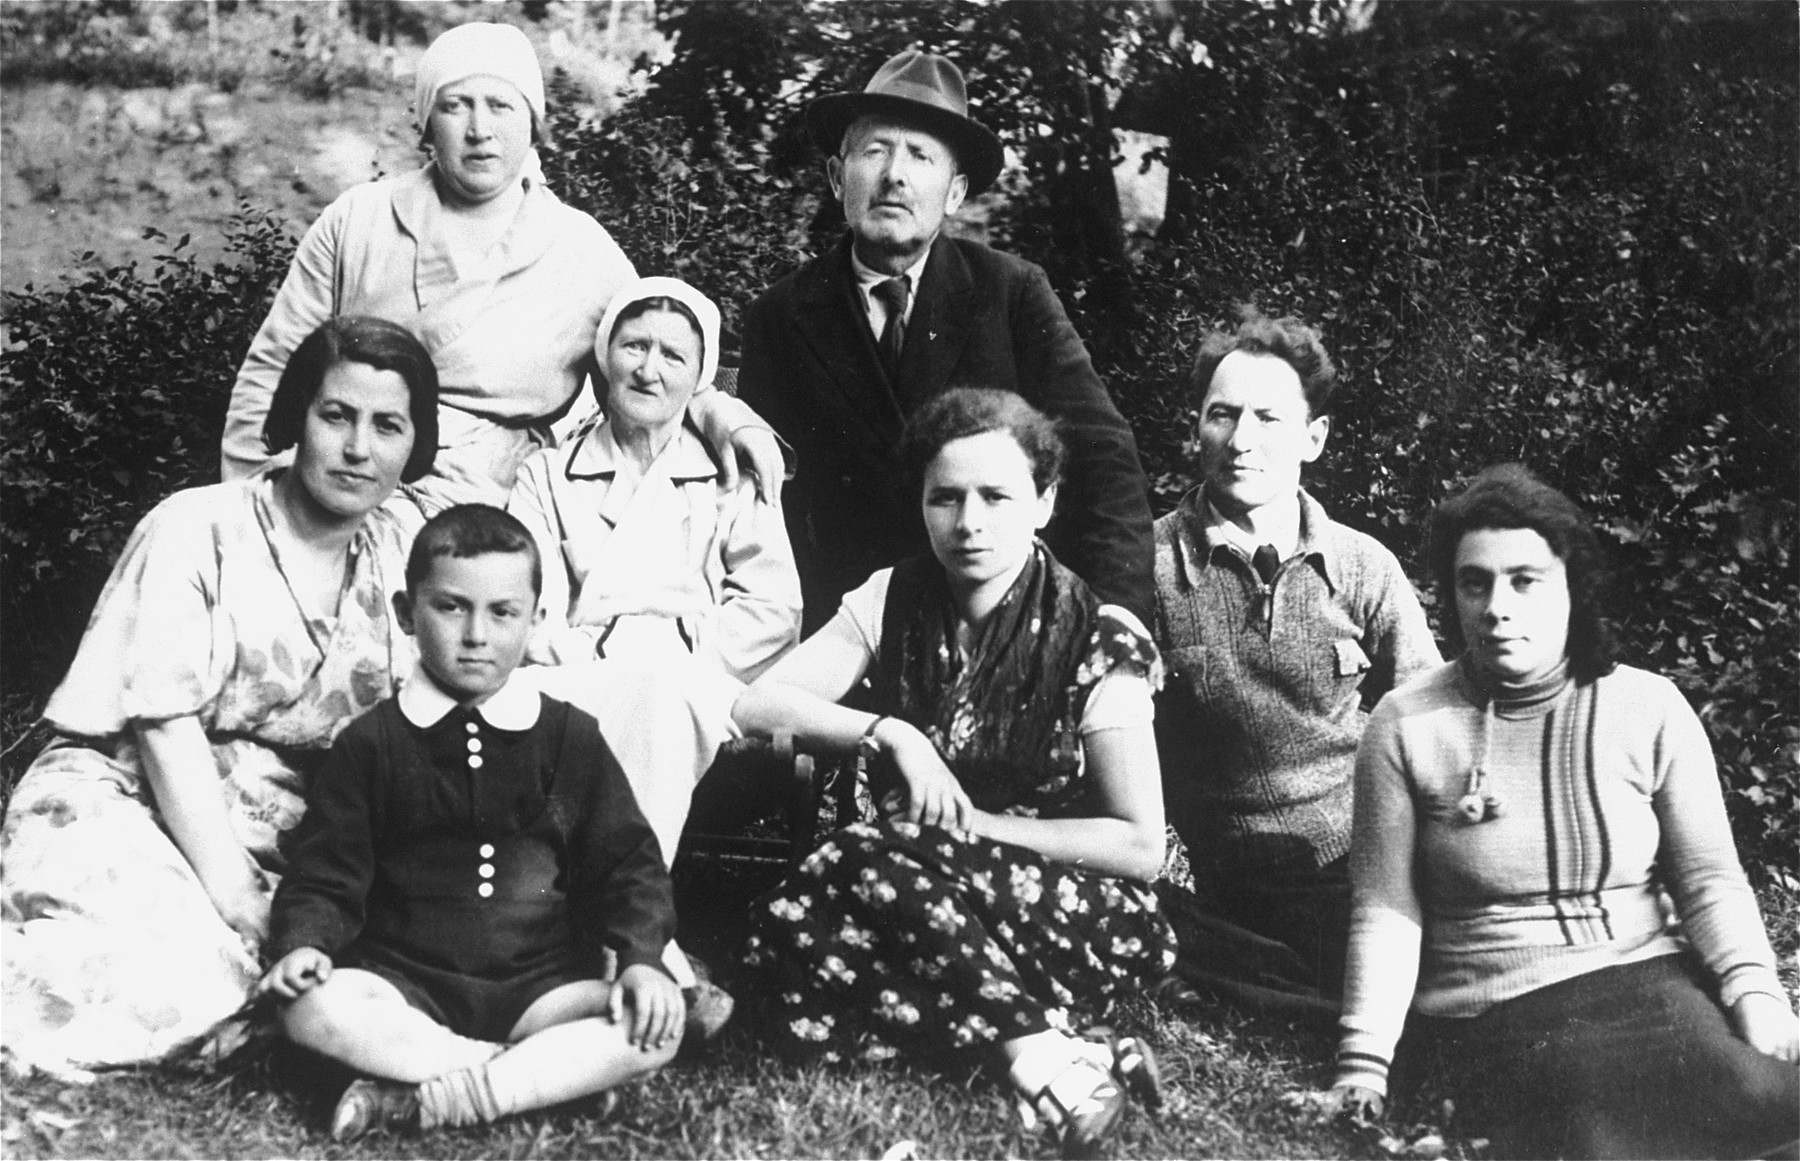 Group portrait of members of the extended Rudashevsky family in Vilna.   Among those pictured are Yitzhak Rudashevsky (front row left), his mother Rosa (second row, left, behind Yitzhak), his father Eli (second from the right), his cousin Yona Rudashevsky (front row, center), his uncle Zvi Yaakov Rudashevsky (back row wearing the hat).